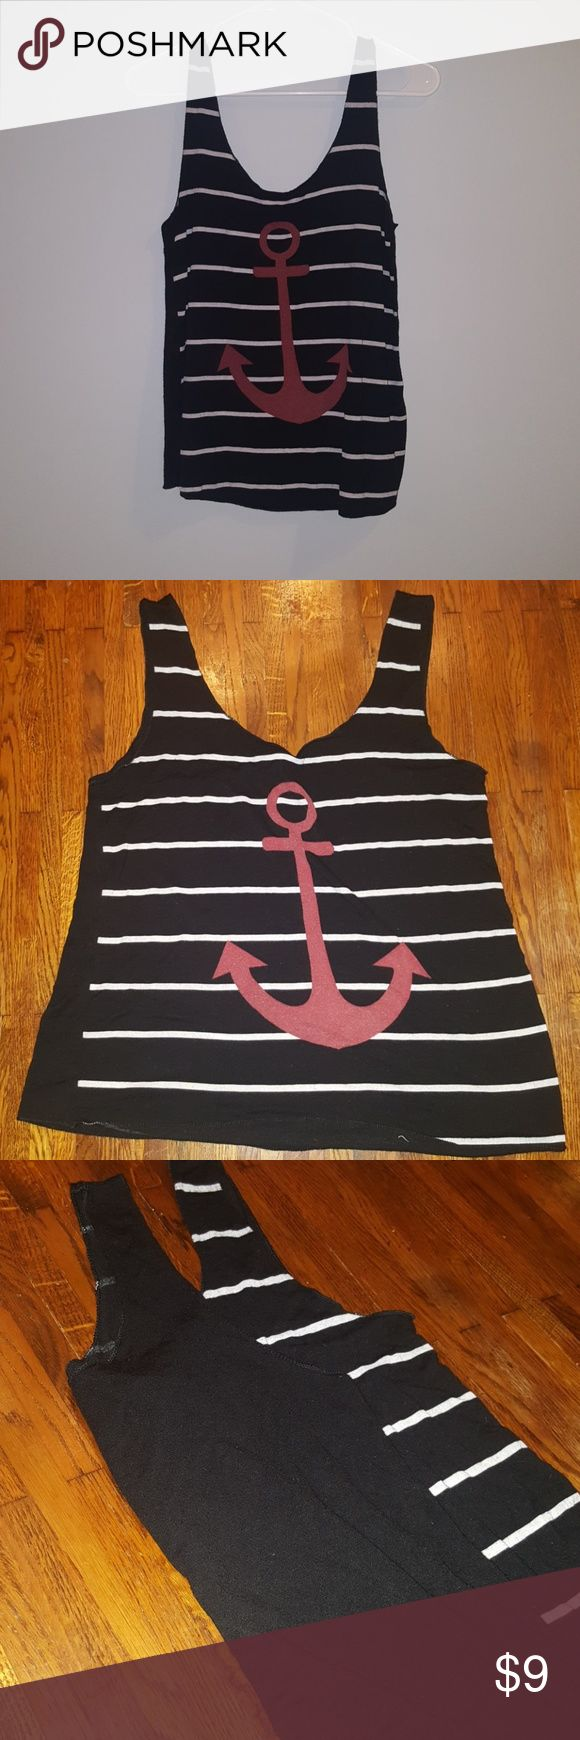 Soft anchor tank top Black with white stripes. Red anchor. Tank is flowy and very soft. Back is solid black. Great condition, except the tag is starting to come off, as shown in picture. Other than that, it's a great, super cute shirt! Has a vintage feel to it. B_envied Tops Tank Tops